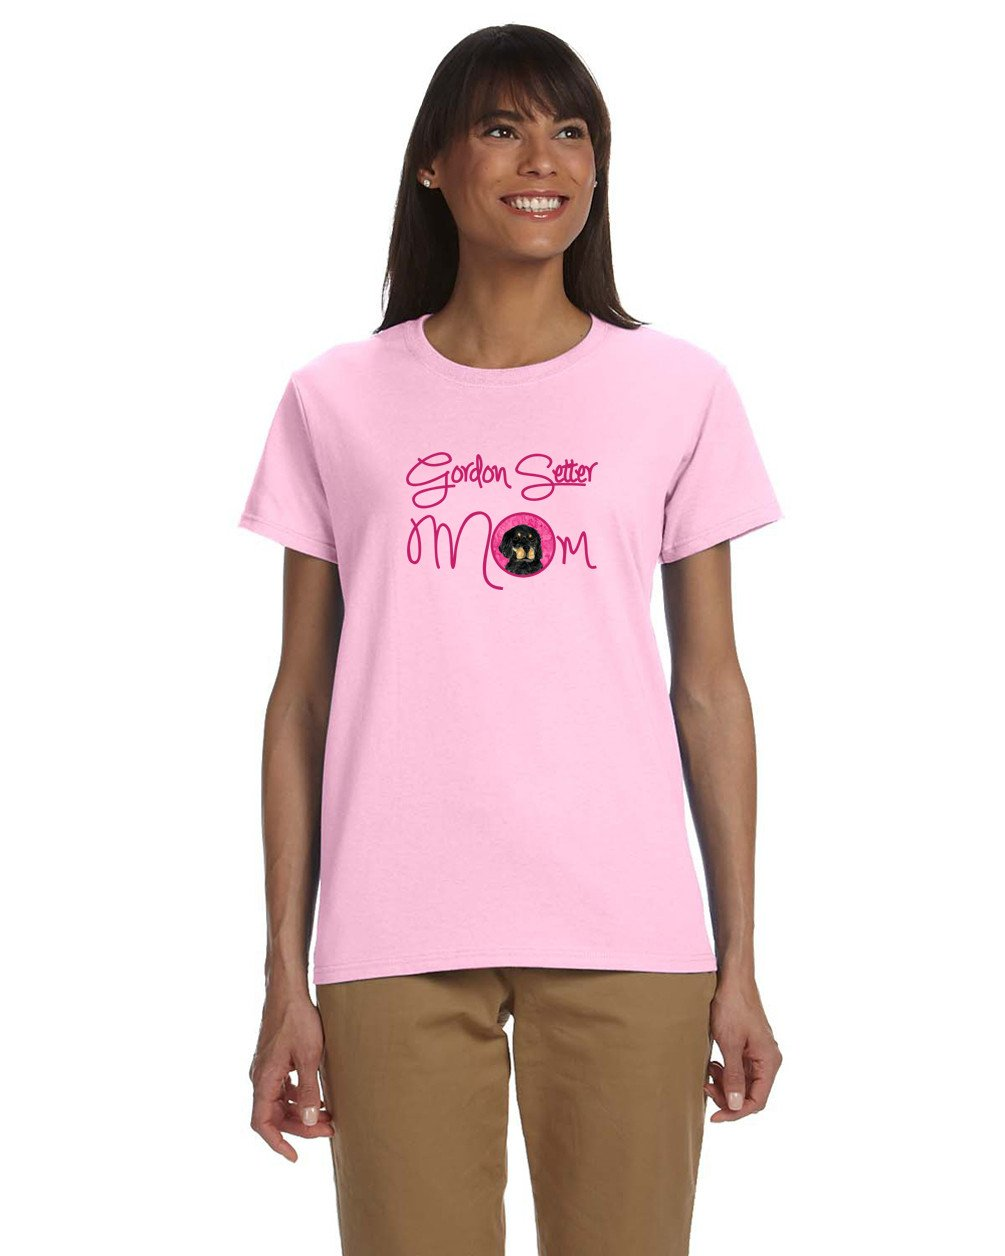 Pink Gordon Setter Mom T-shirt Ladies Cut Short Sleeve ExtraLarge by Caroline's Treasures